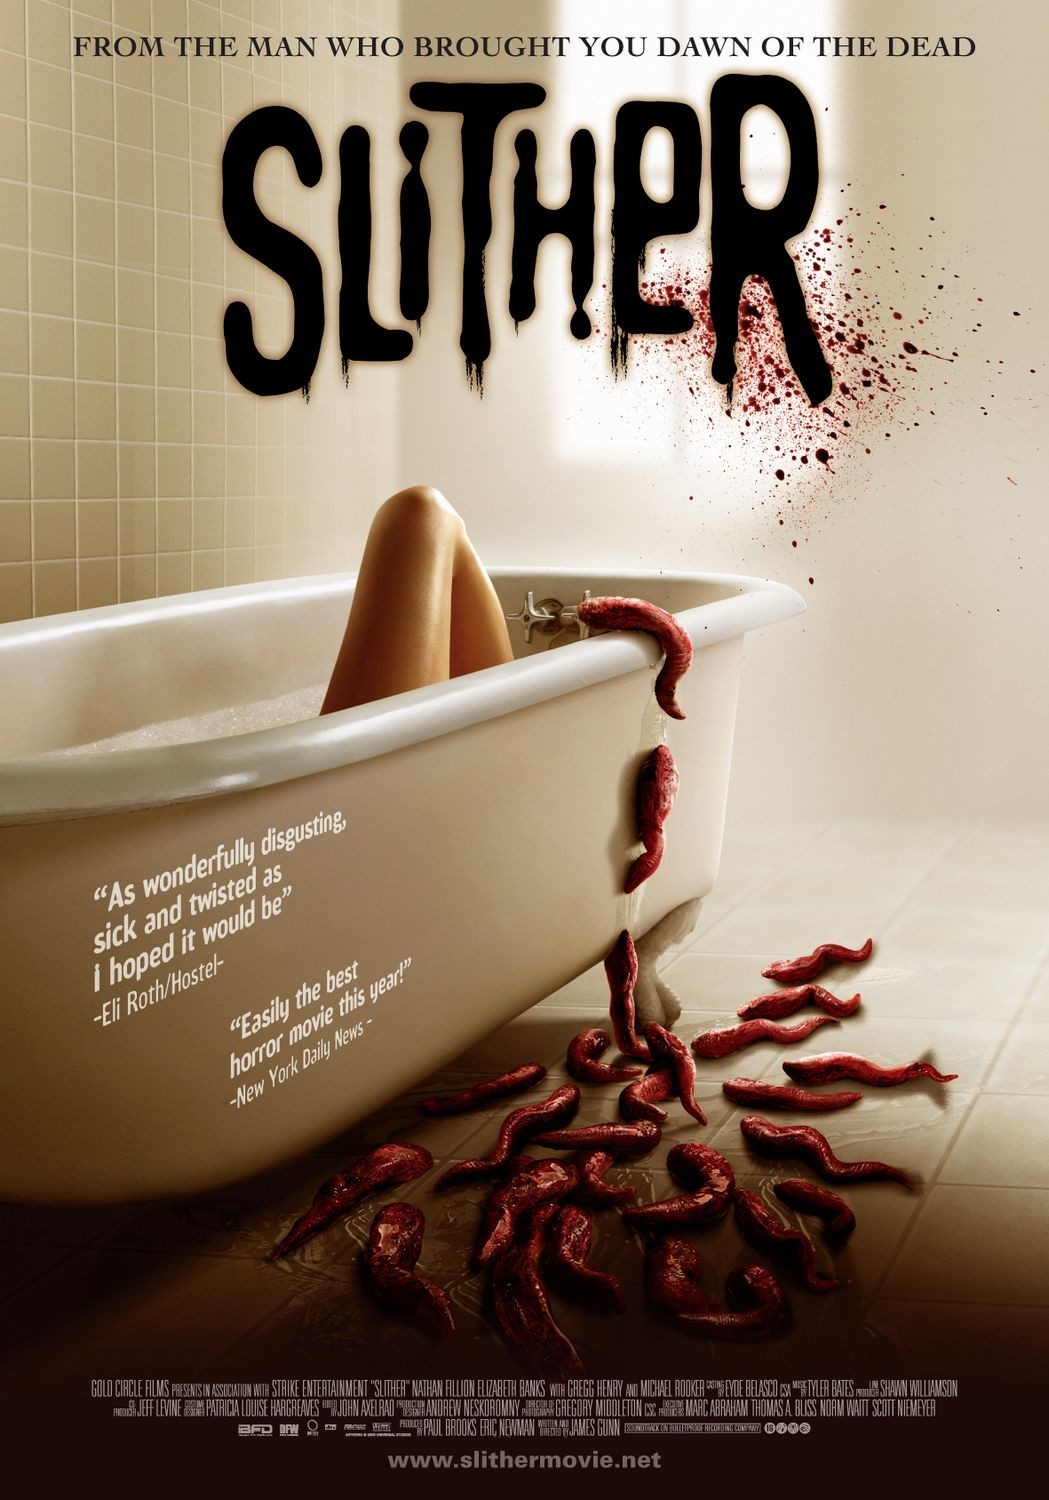 15 Outstanding Horror Movie Posters From 2000-2010